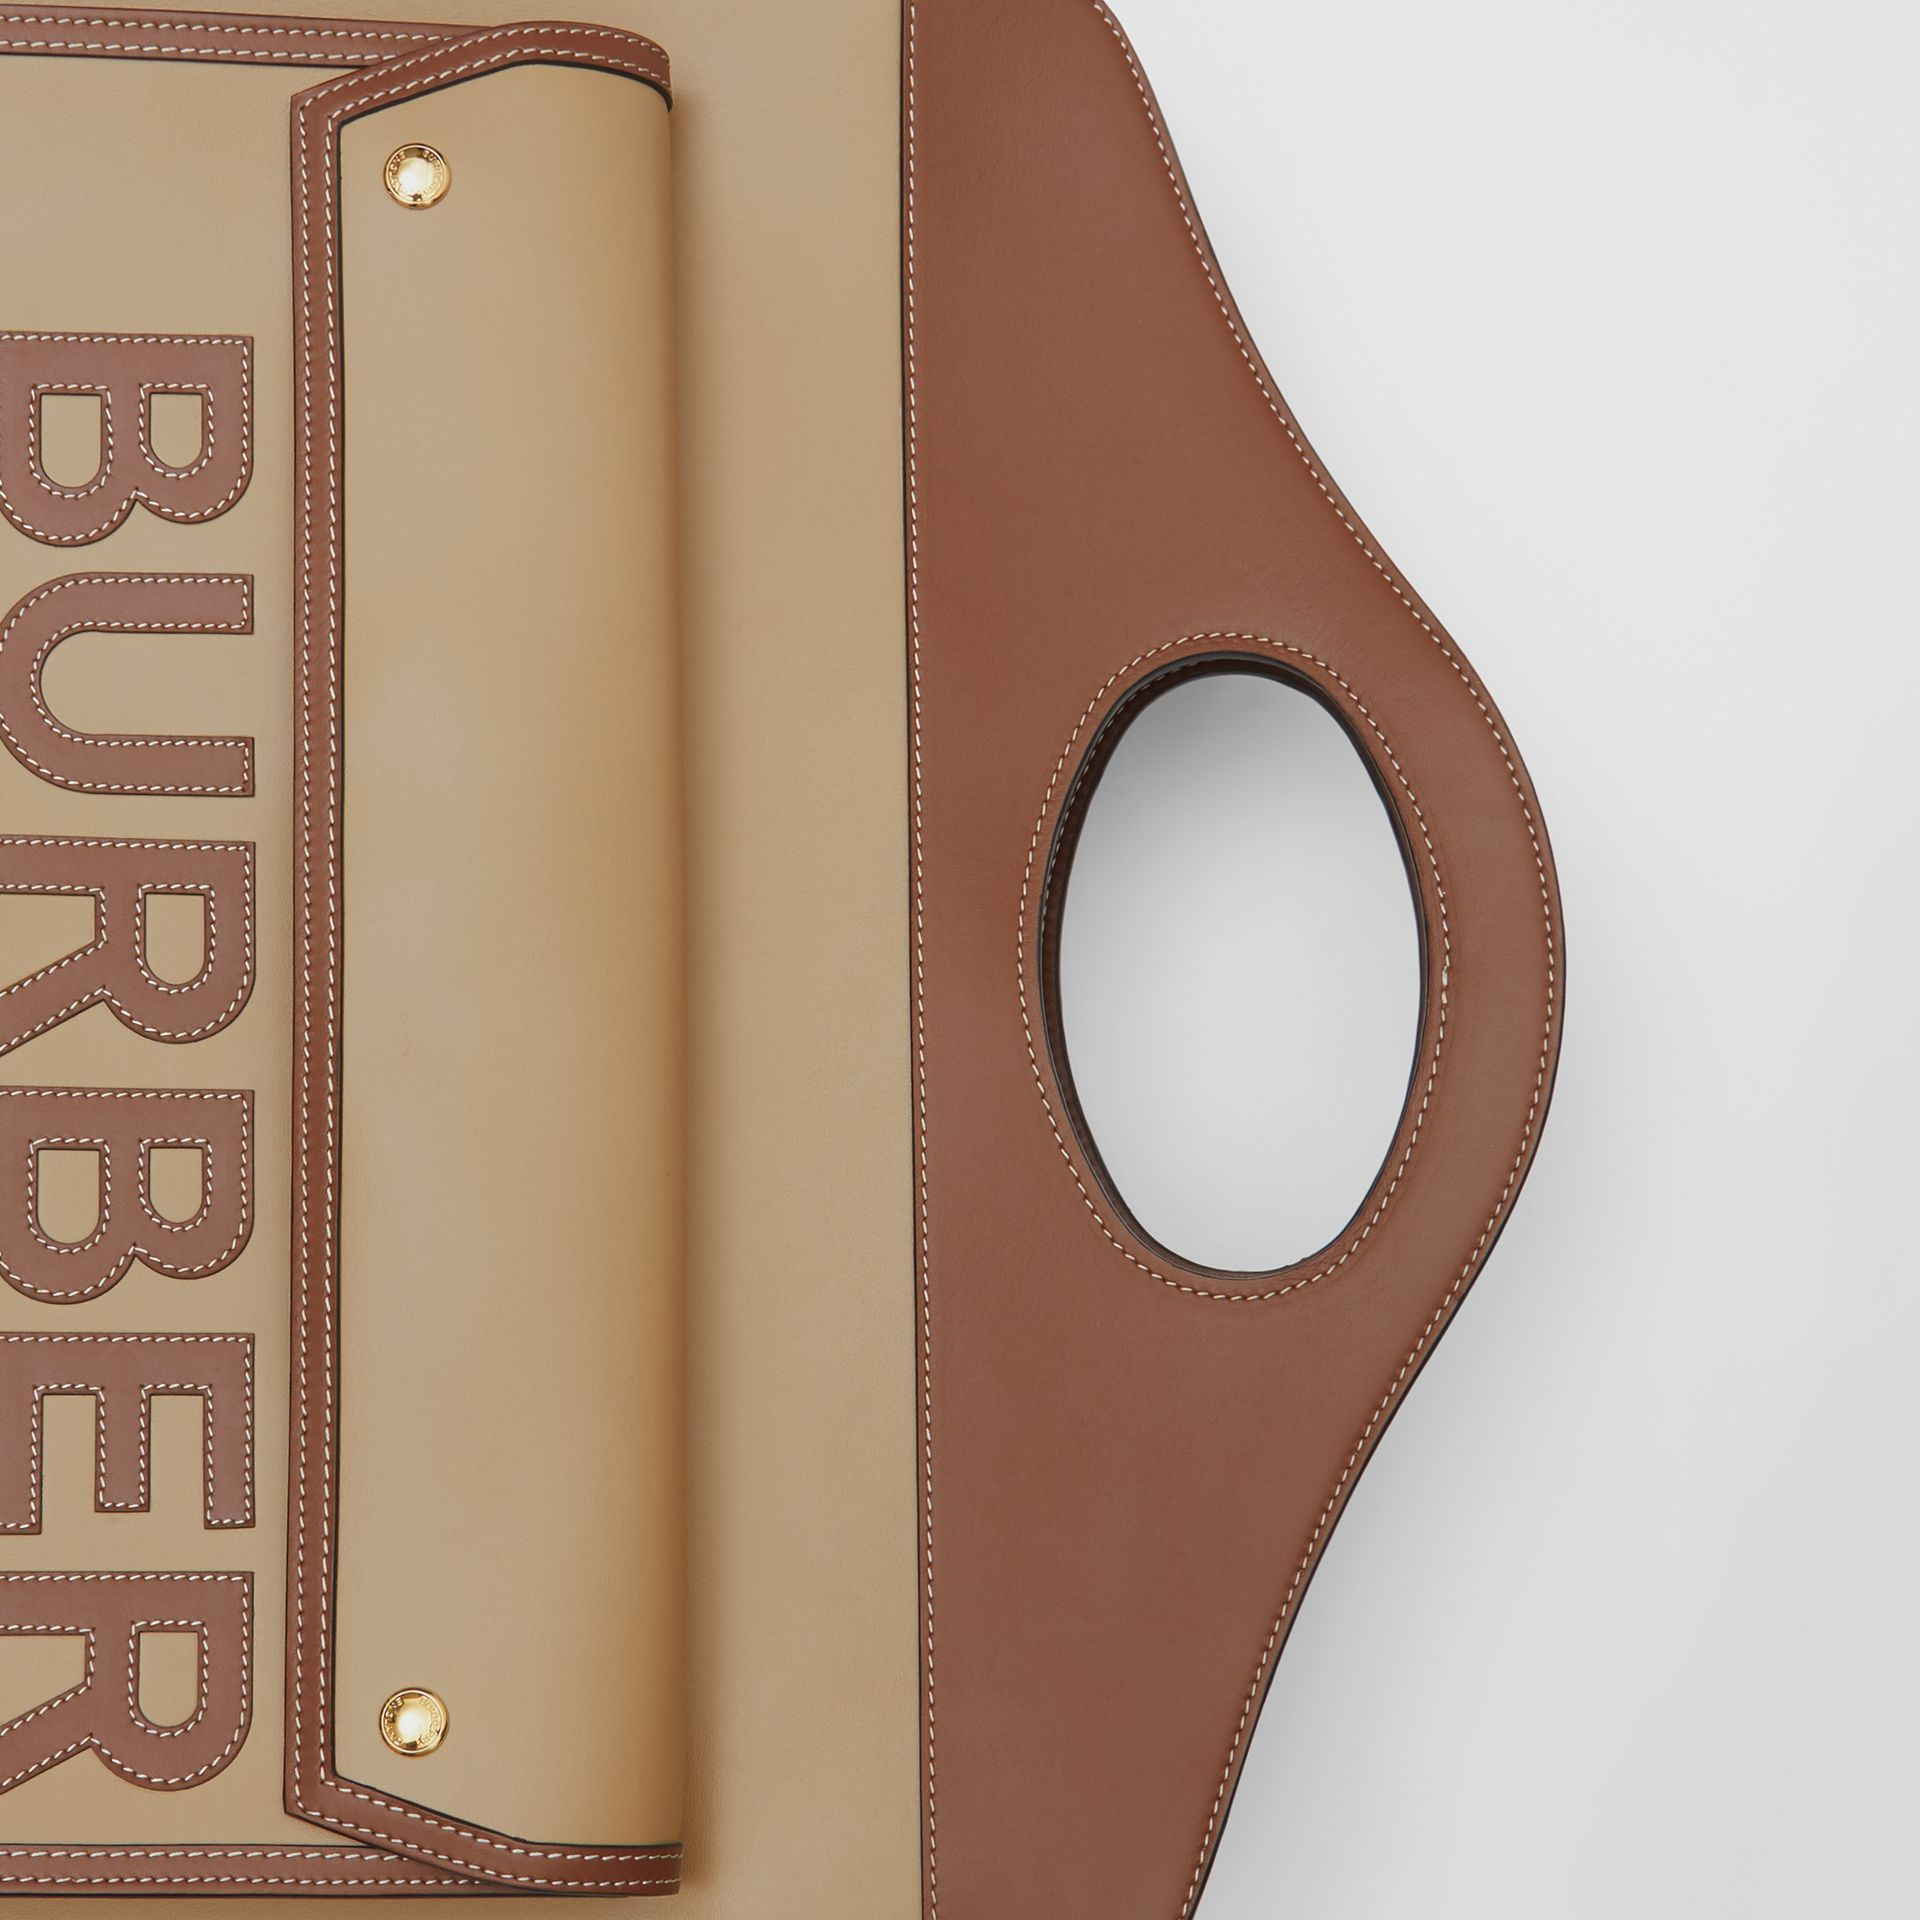 Extra Large Horseferry Appliqué Leather Pocket Bag in Honey - Women | Burberry United States - gallery image 1